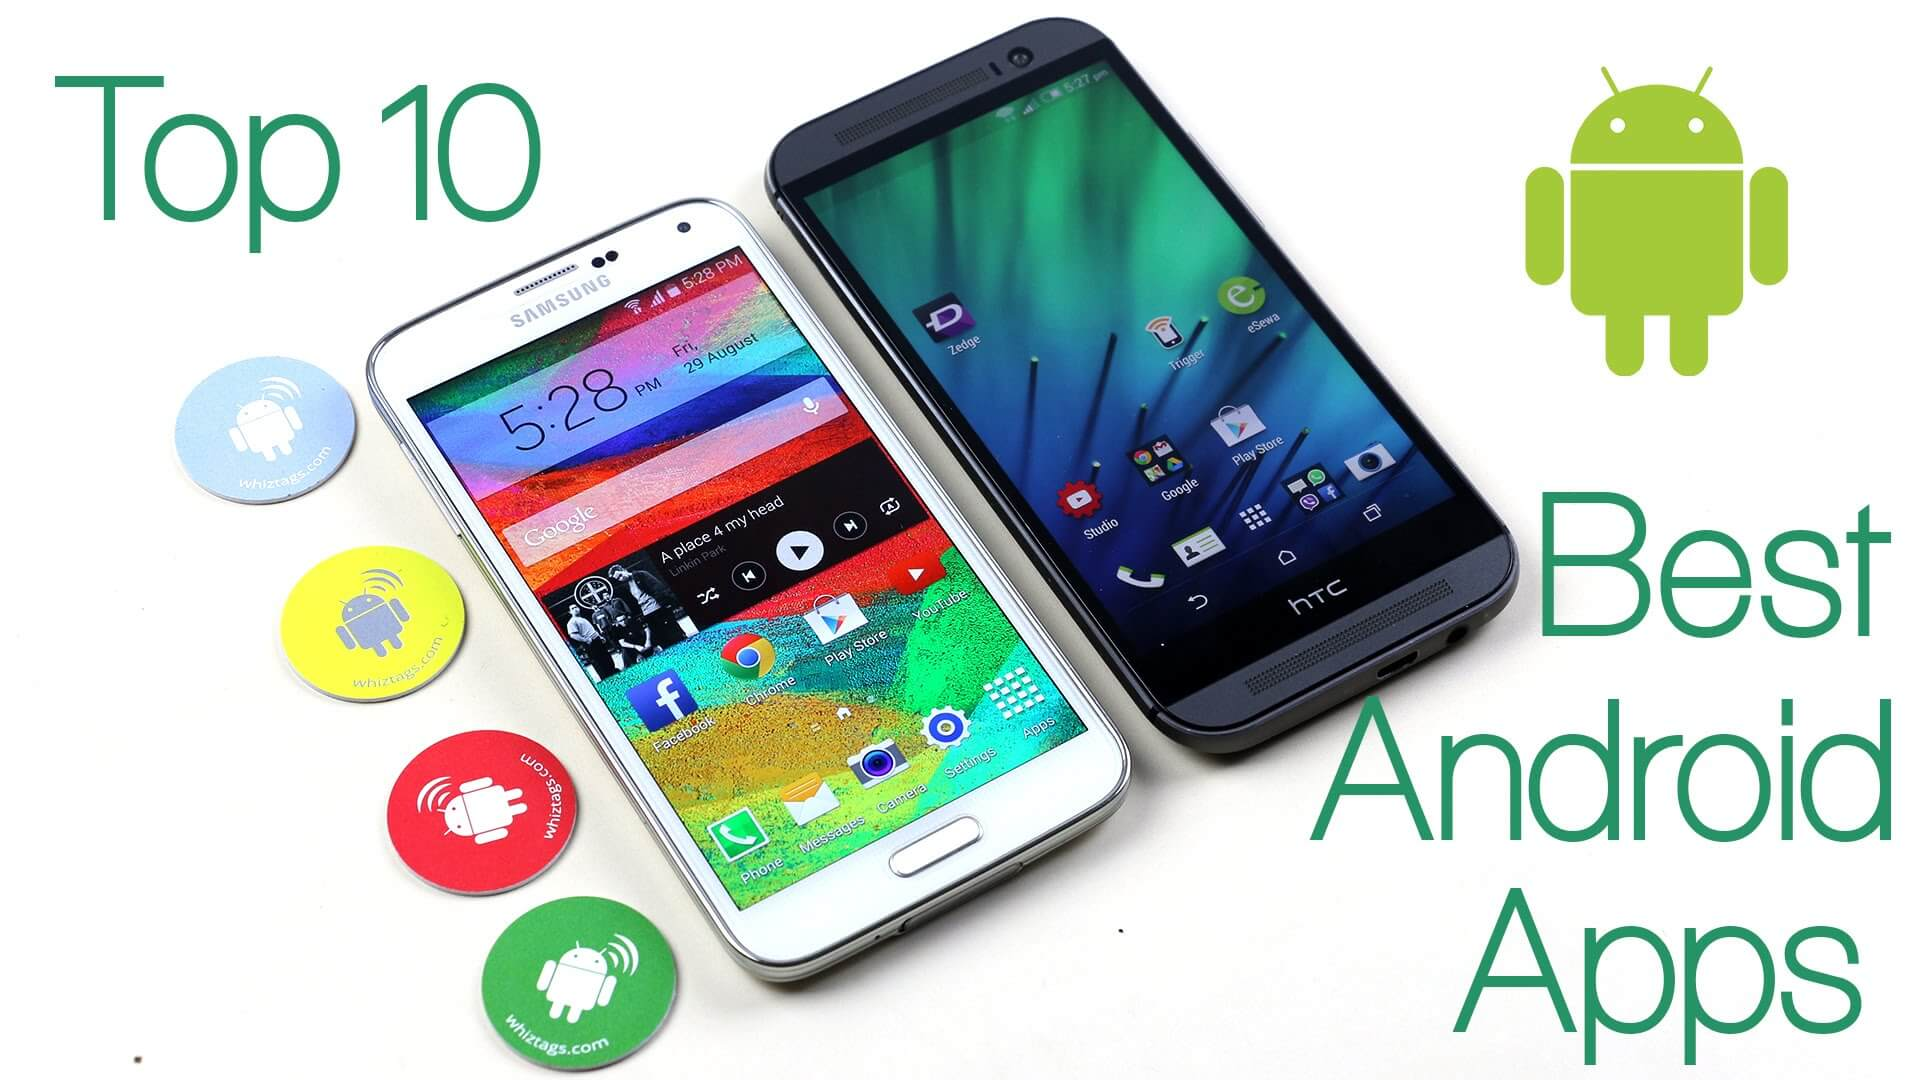 Top 10 most useful Apps for Android [Must Read]